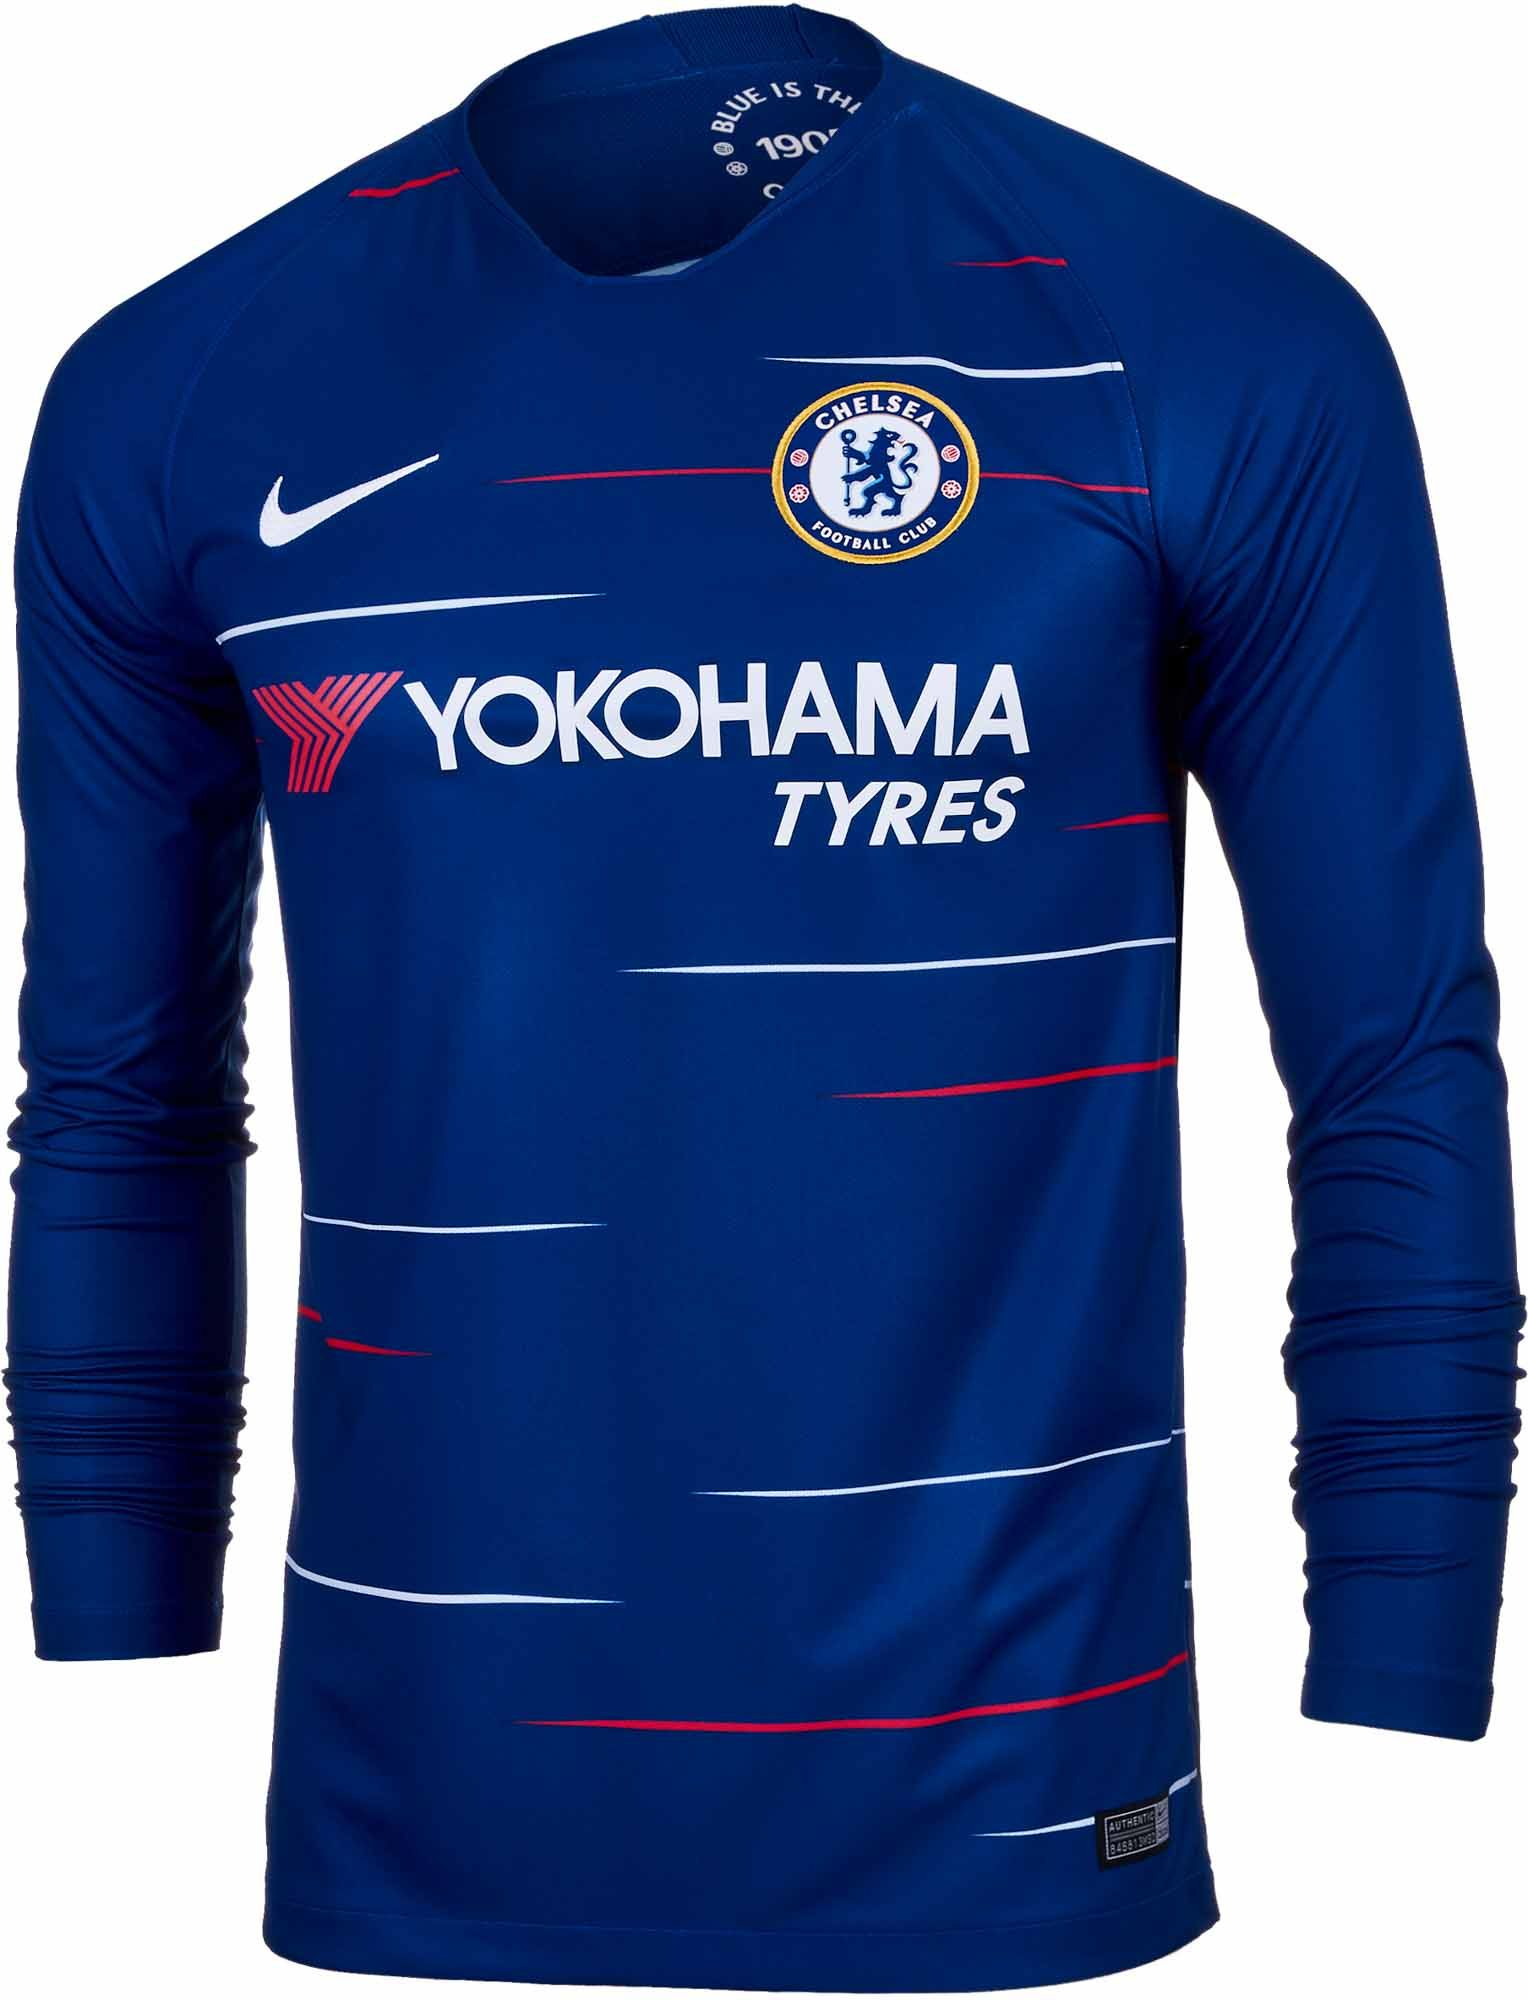 80aef4fa3 2018 19 adidas Chelsea FC L S Home Jersey. Hot at soccerpro.com right now.  Get yours today.